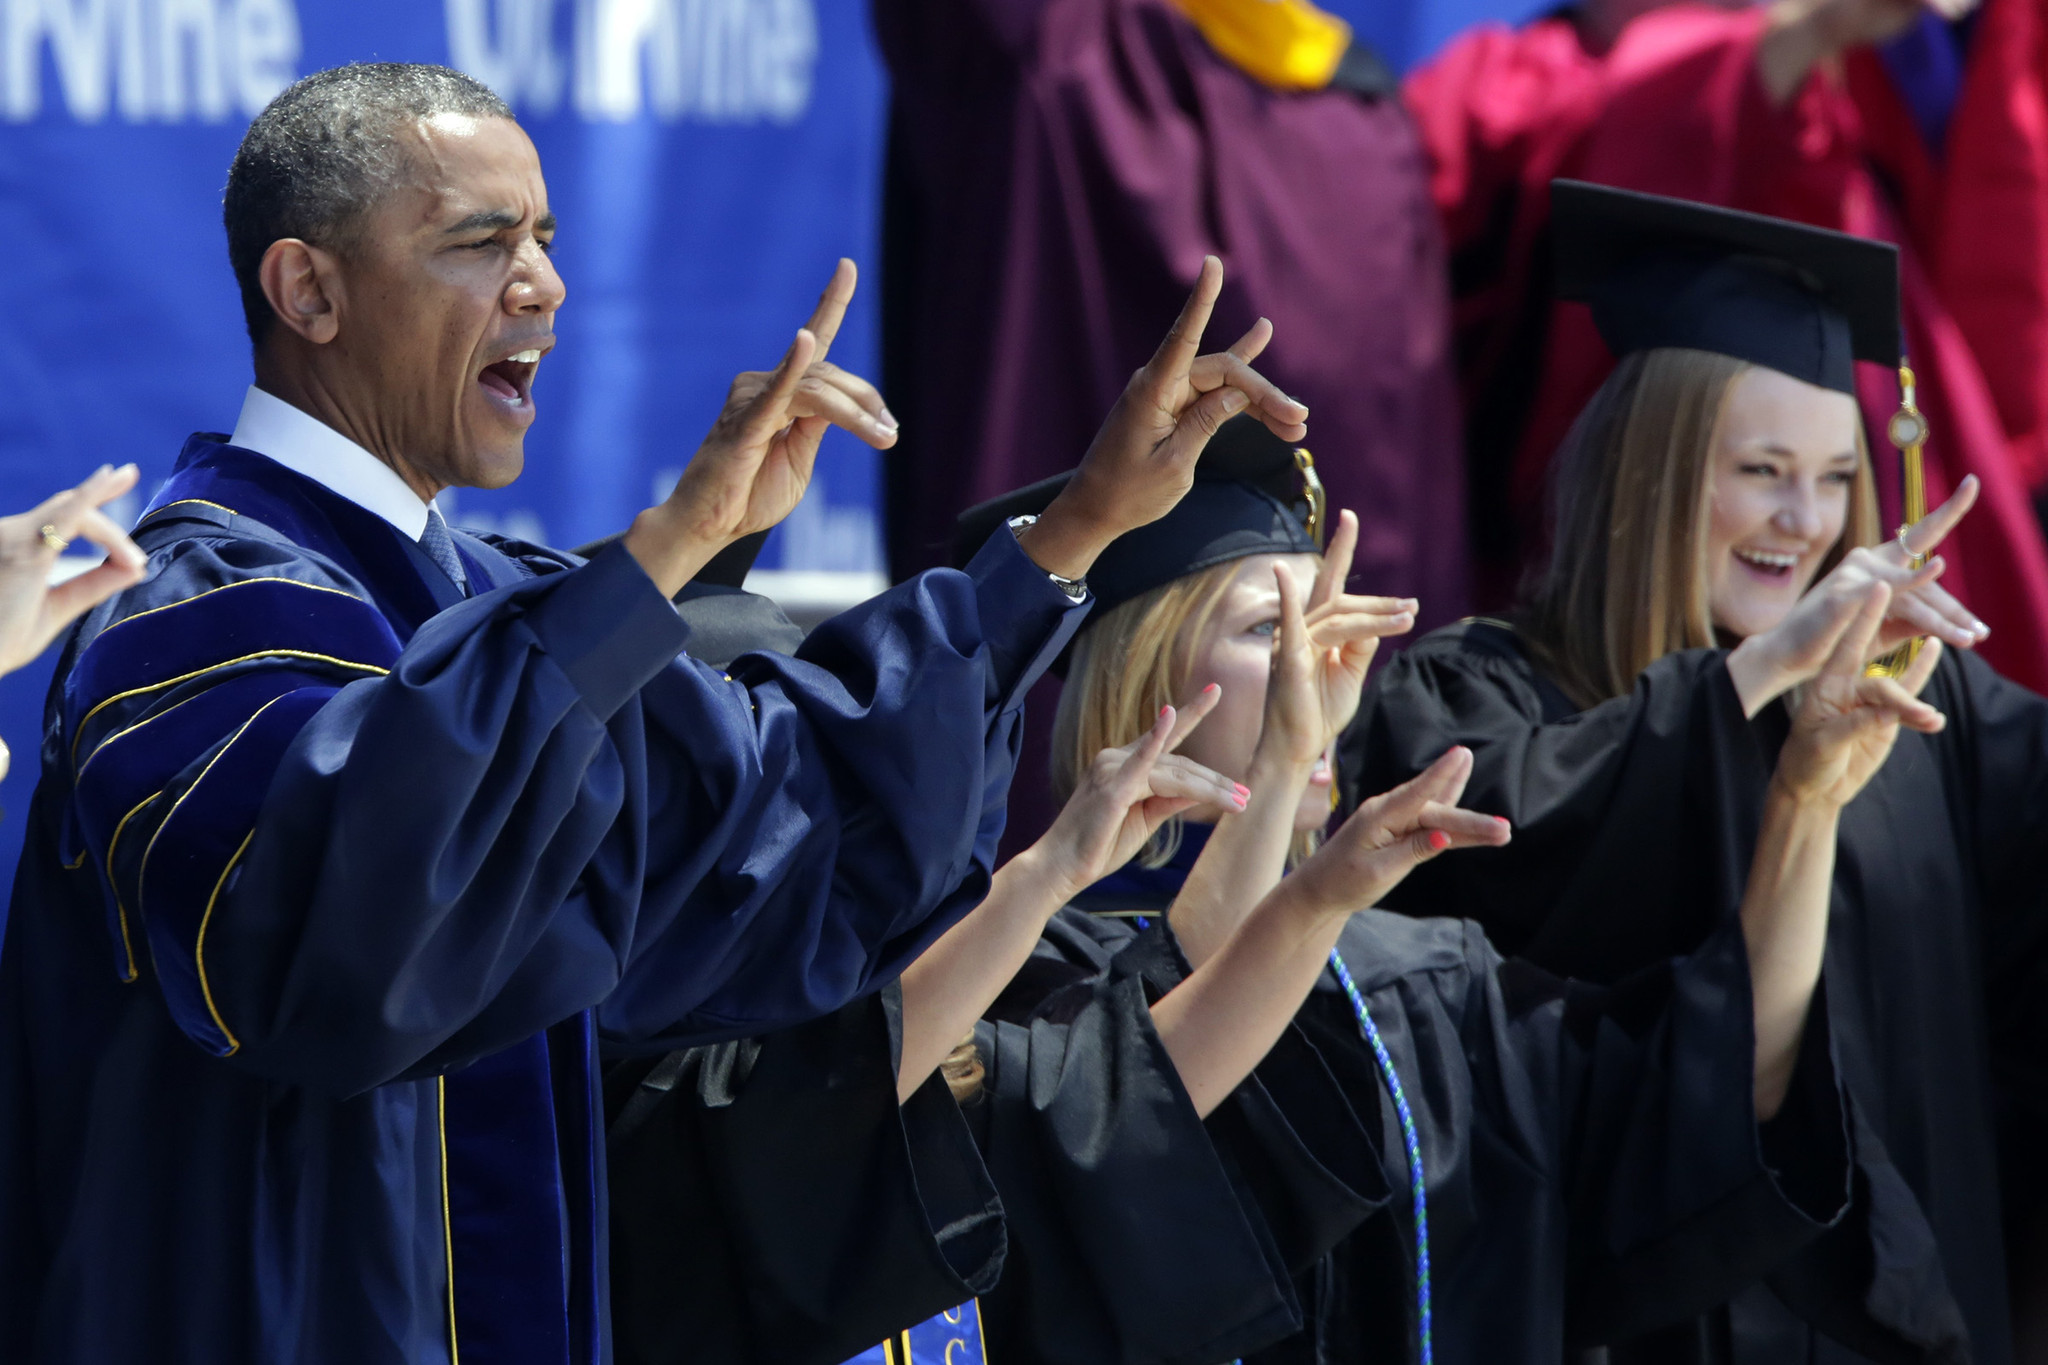 President Obama joins others in making the Anteater sign and sound at UC Irvine's commencement ceremony on June 14, 2014, at Angel Stadium in Anaheim. President Obama's address kicked off the campus' 50th anniversary celebration. The university's first commencement speaker was President Lyndon B. Johnson, who dedicated the campus site on June 20, 1964.